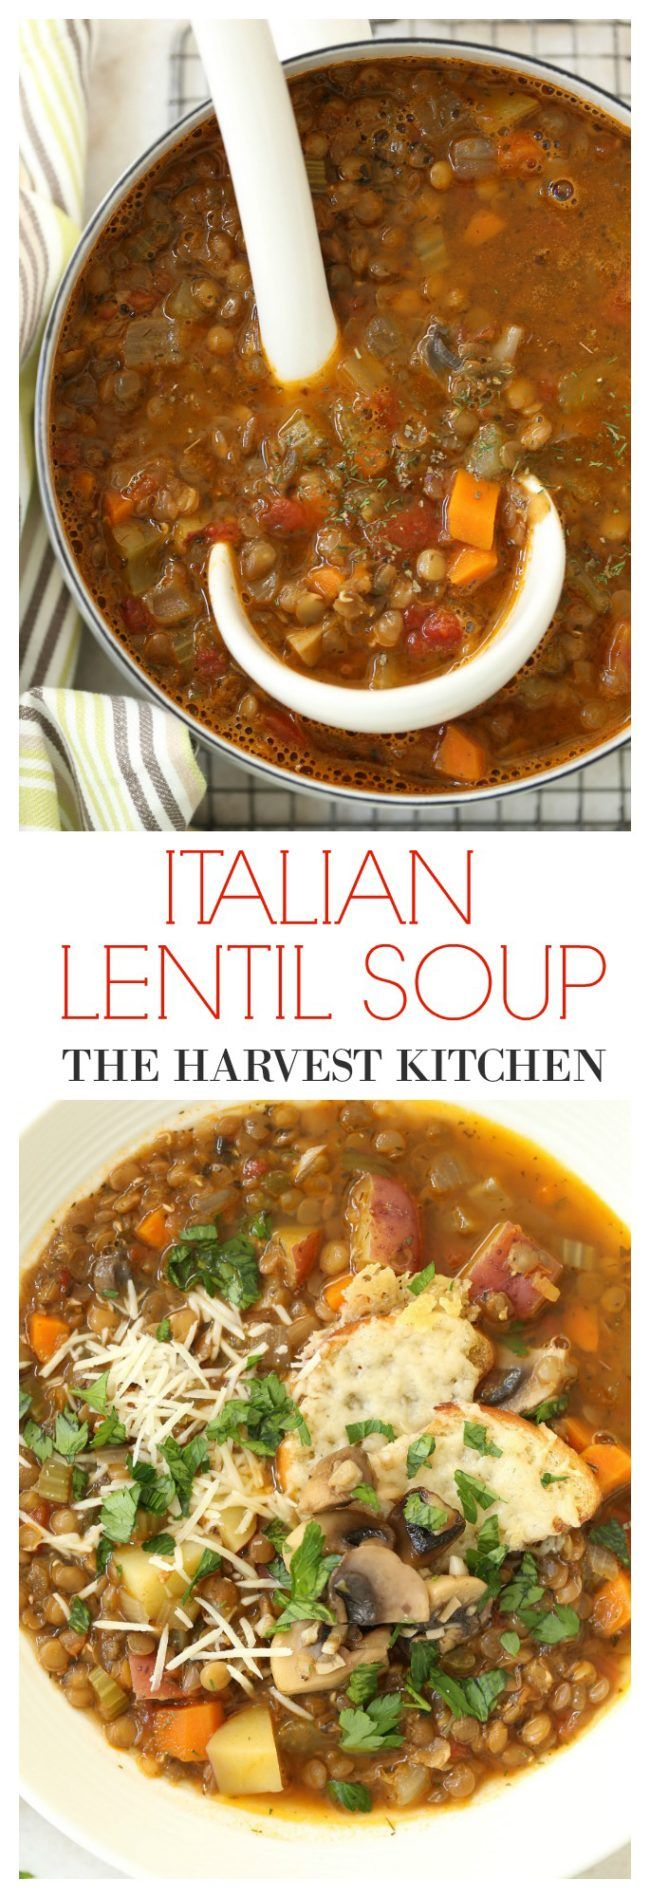 This rich and hearty Italian Lentil Soup is loaded with iron and fiber!